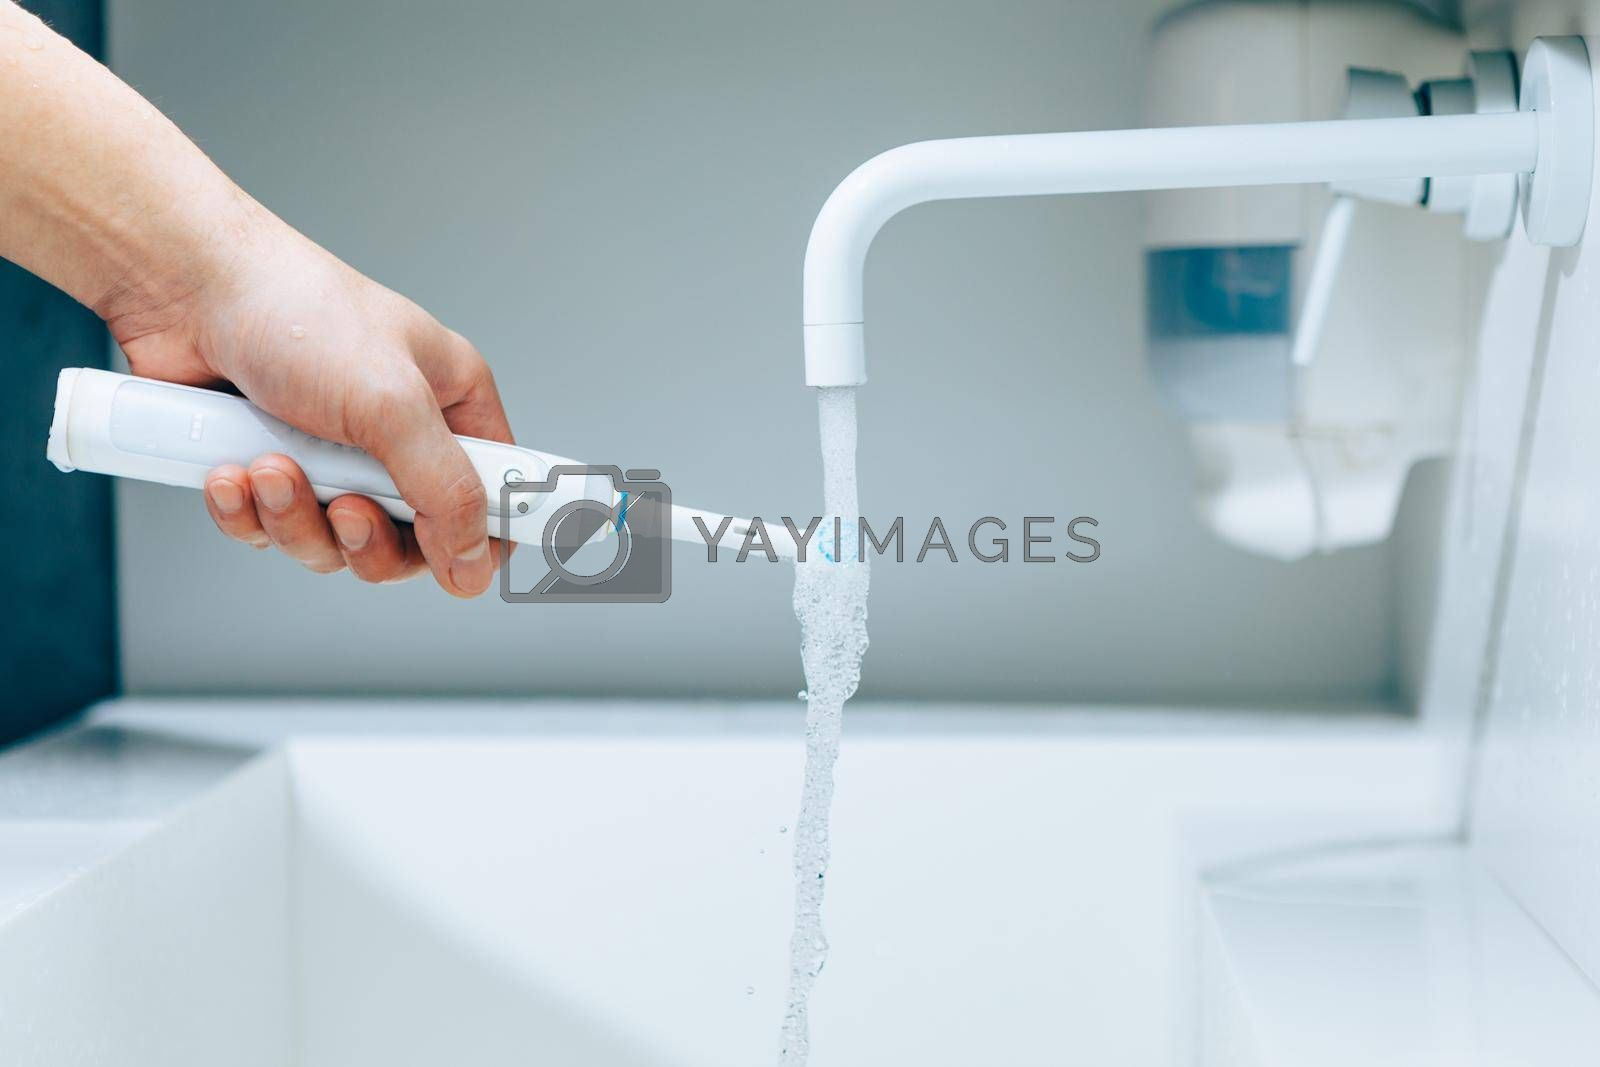 hand holding a toothbrush under flowing water from faucet in a bathroom